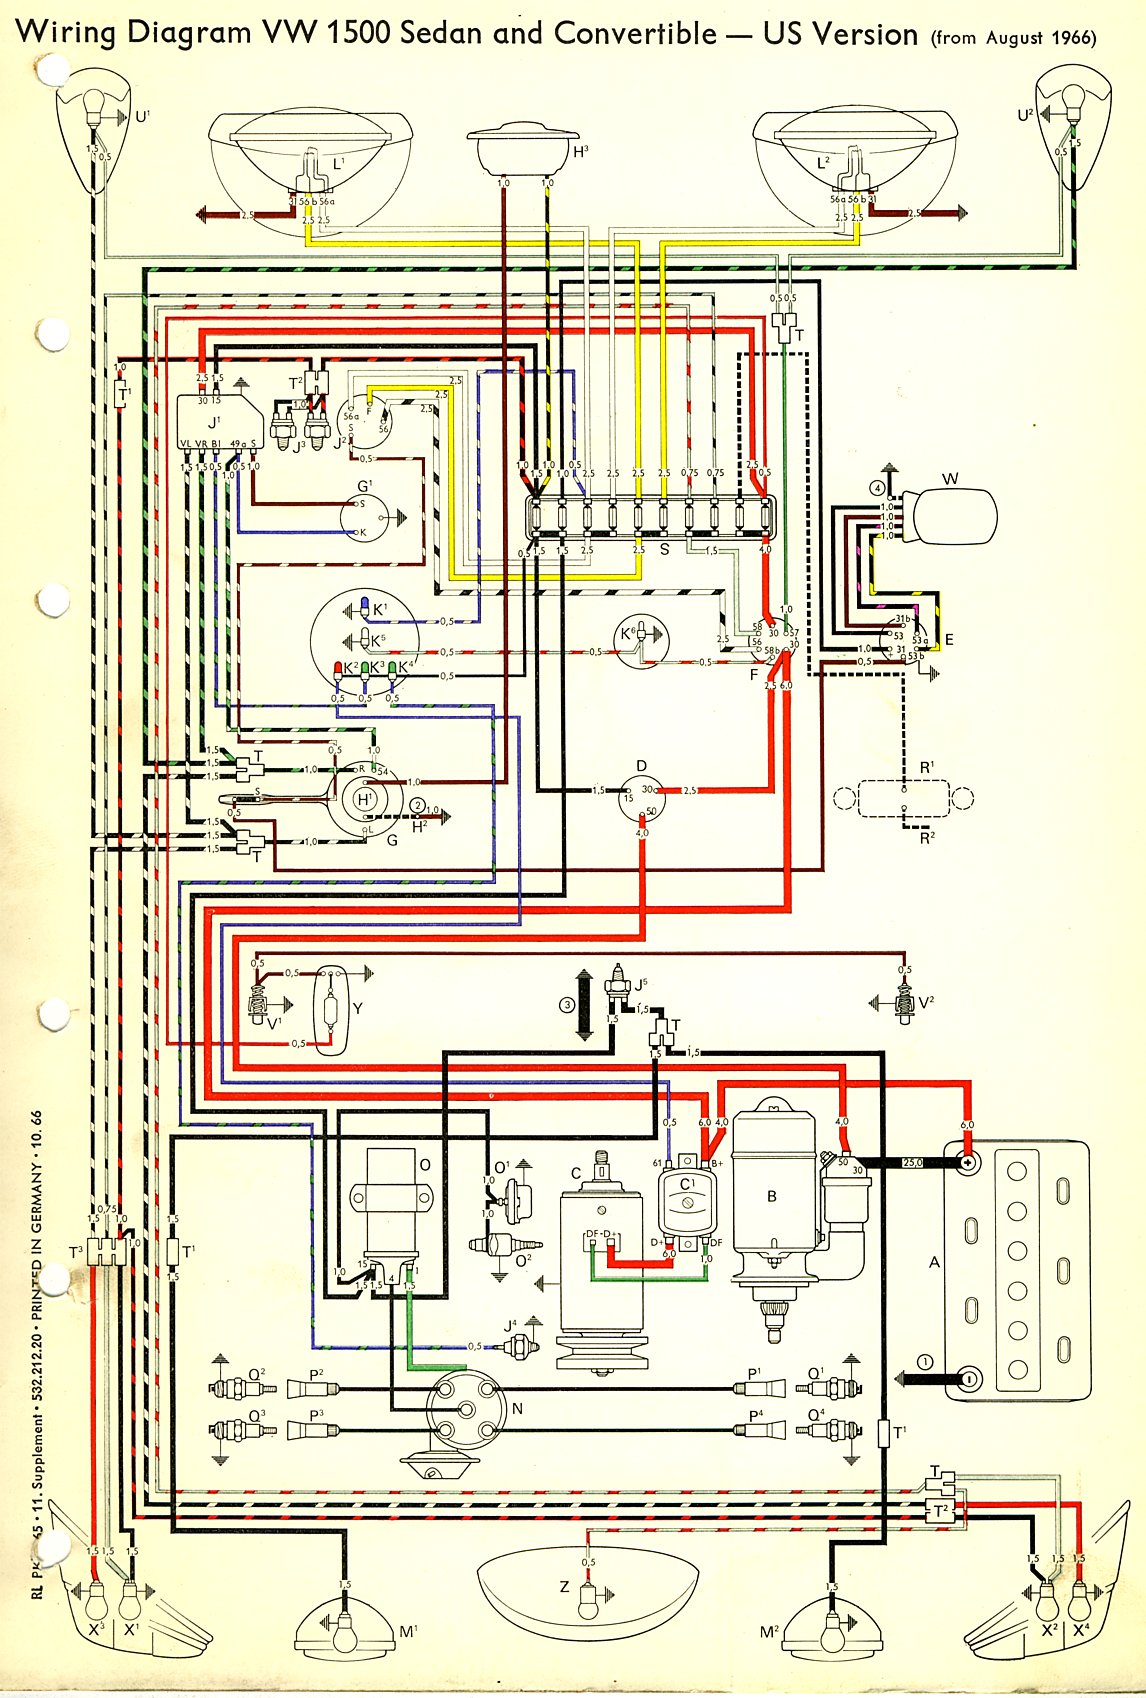 Apexi Afc V Wiring Diagram Apexi Circuit Diagrams